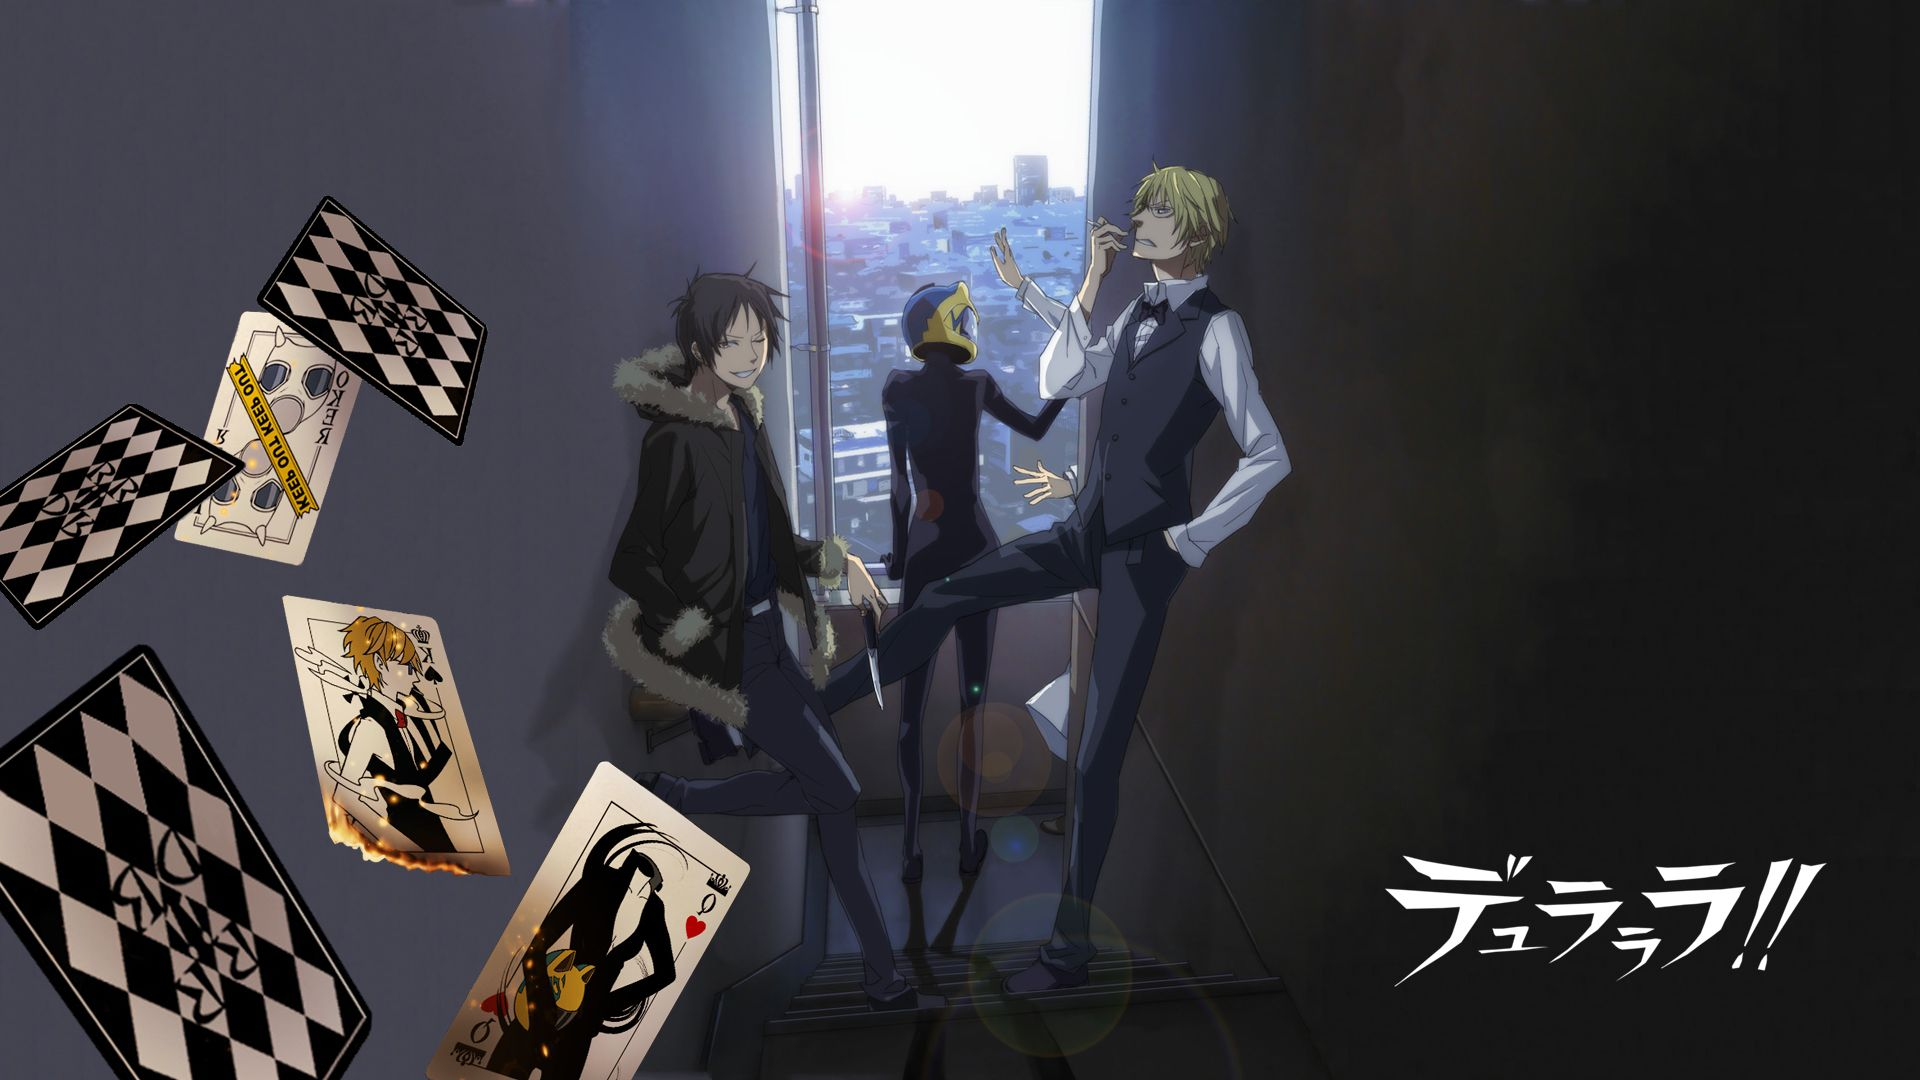 Drrr Durarara Wallpaper Durarara Wallpaper Free Download